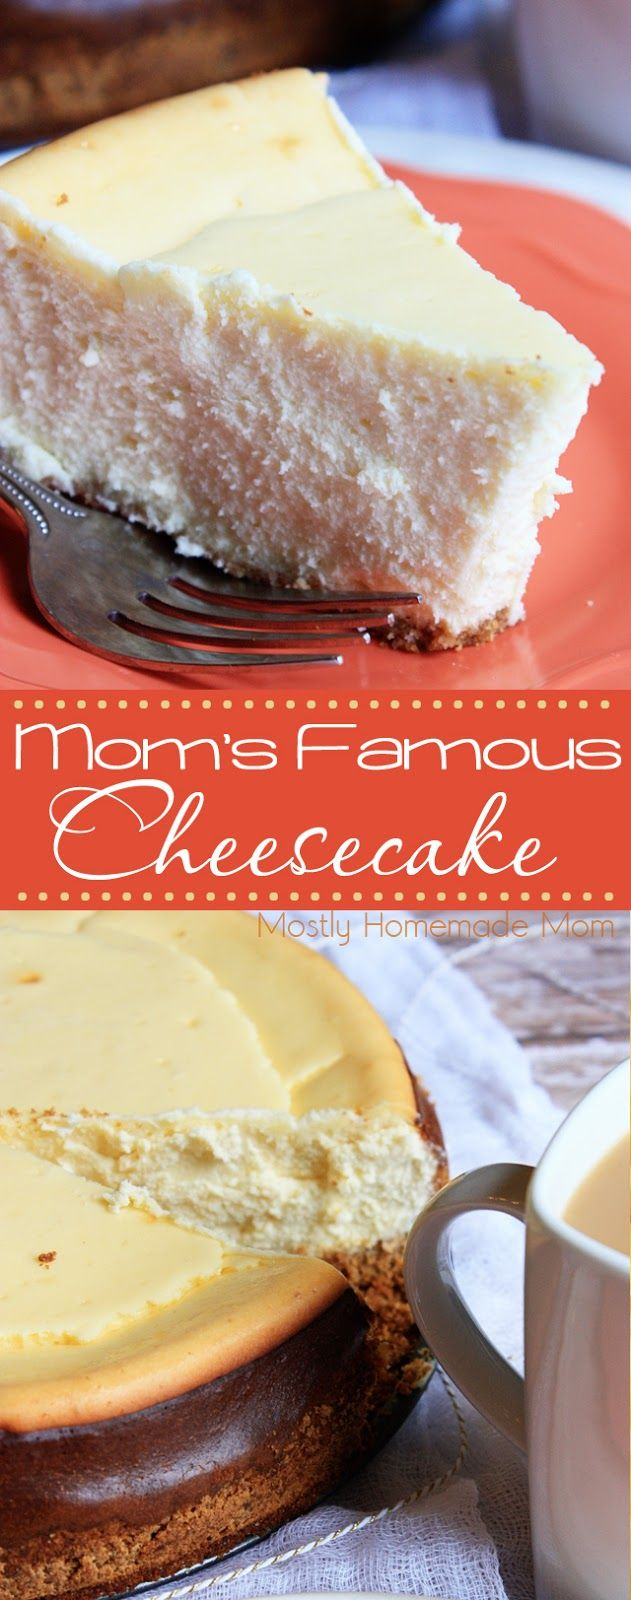 This rich, velvety cheesecake is the best you'll ever have! A New York favorite dessert!